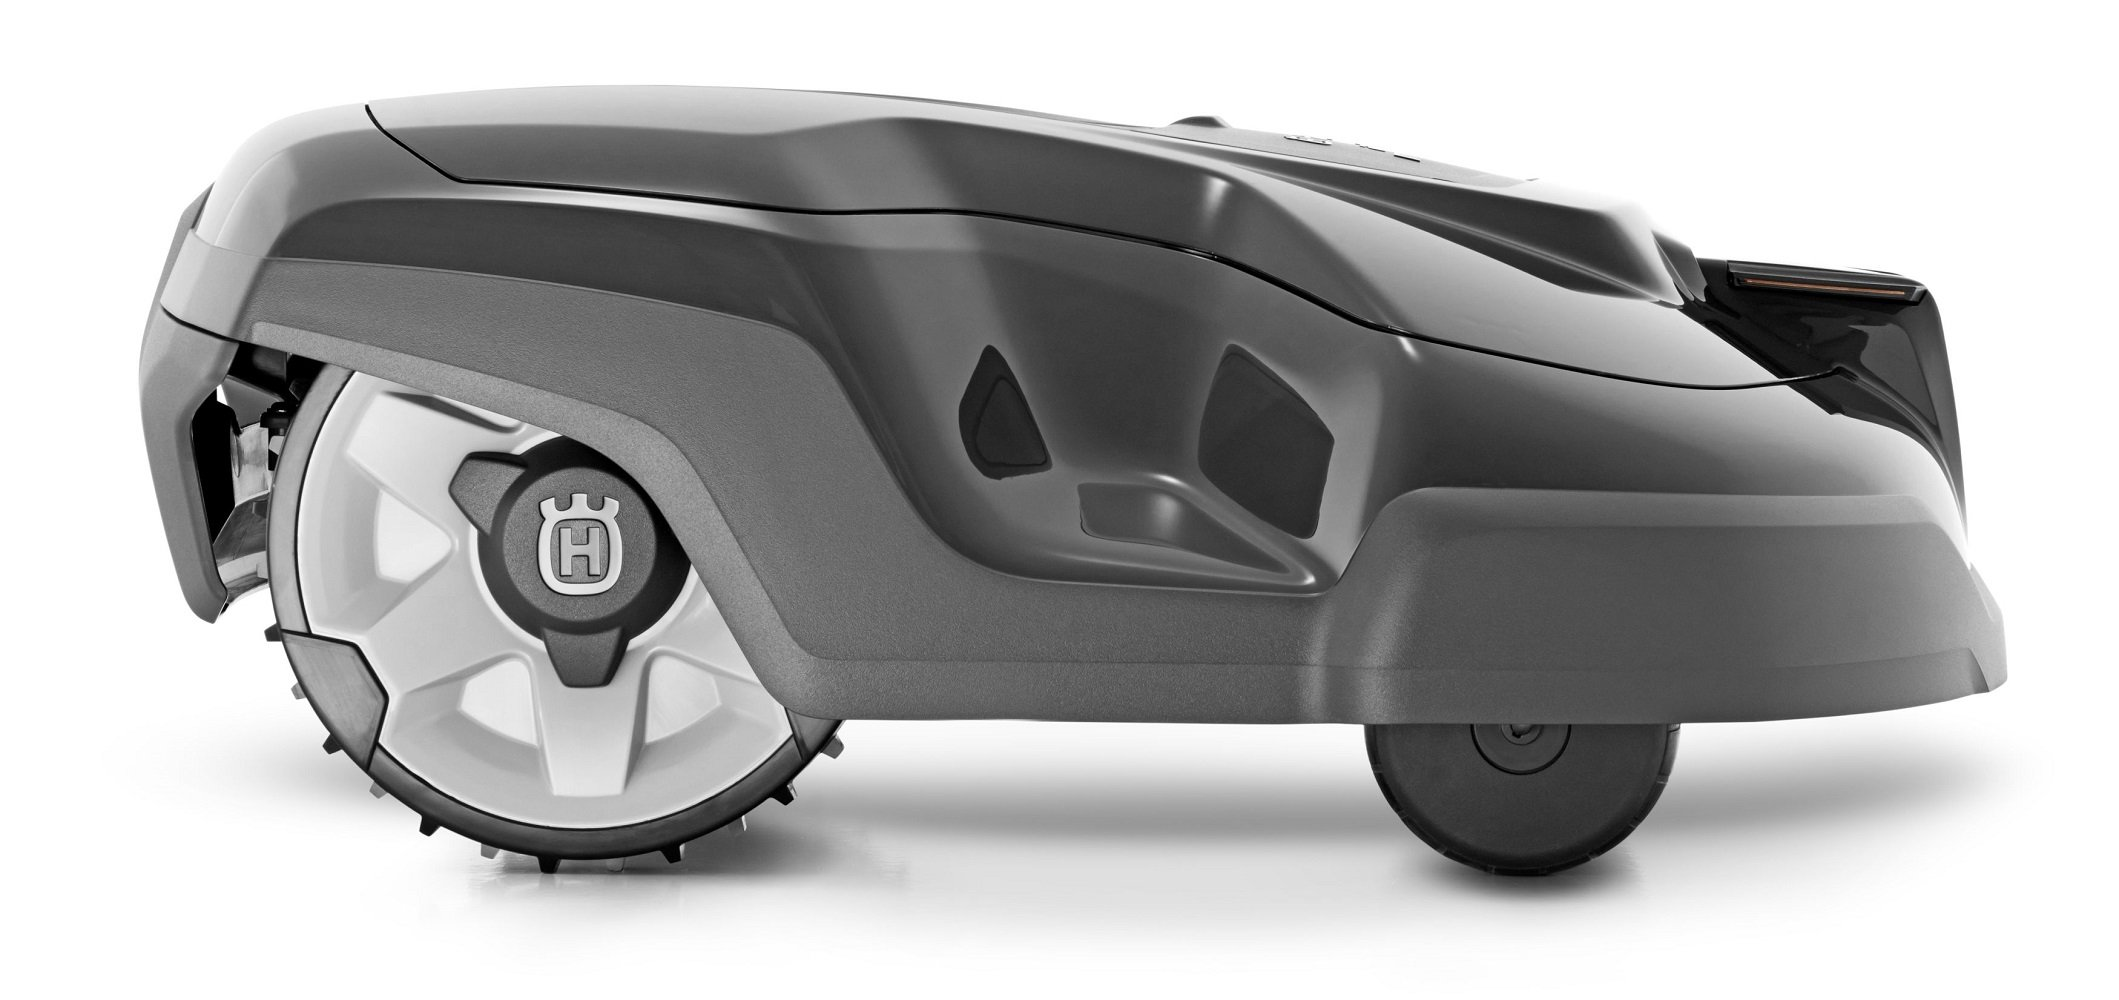 Husqvarna automower 310, robotic lawn mower 3 smart home meets smart lawn - manage your lawn with the touch of a button and maintain a yard your neighbor's will envy; the connect@home app allows you to set and adjust your automower's cutting schedule with ease (bluetooth connectivity works up to 100 ft) guided by hidden boundary wires, automower knows how to smartly maneuver around your yard and when to return to the charging station for a battery recharge quiet enough to run at night, you'll never have to worry about disturbing your neighbors again with noise or fumes